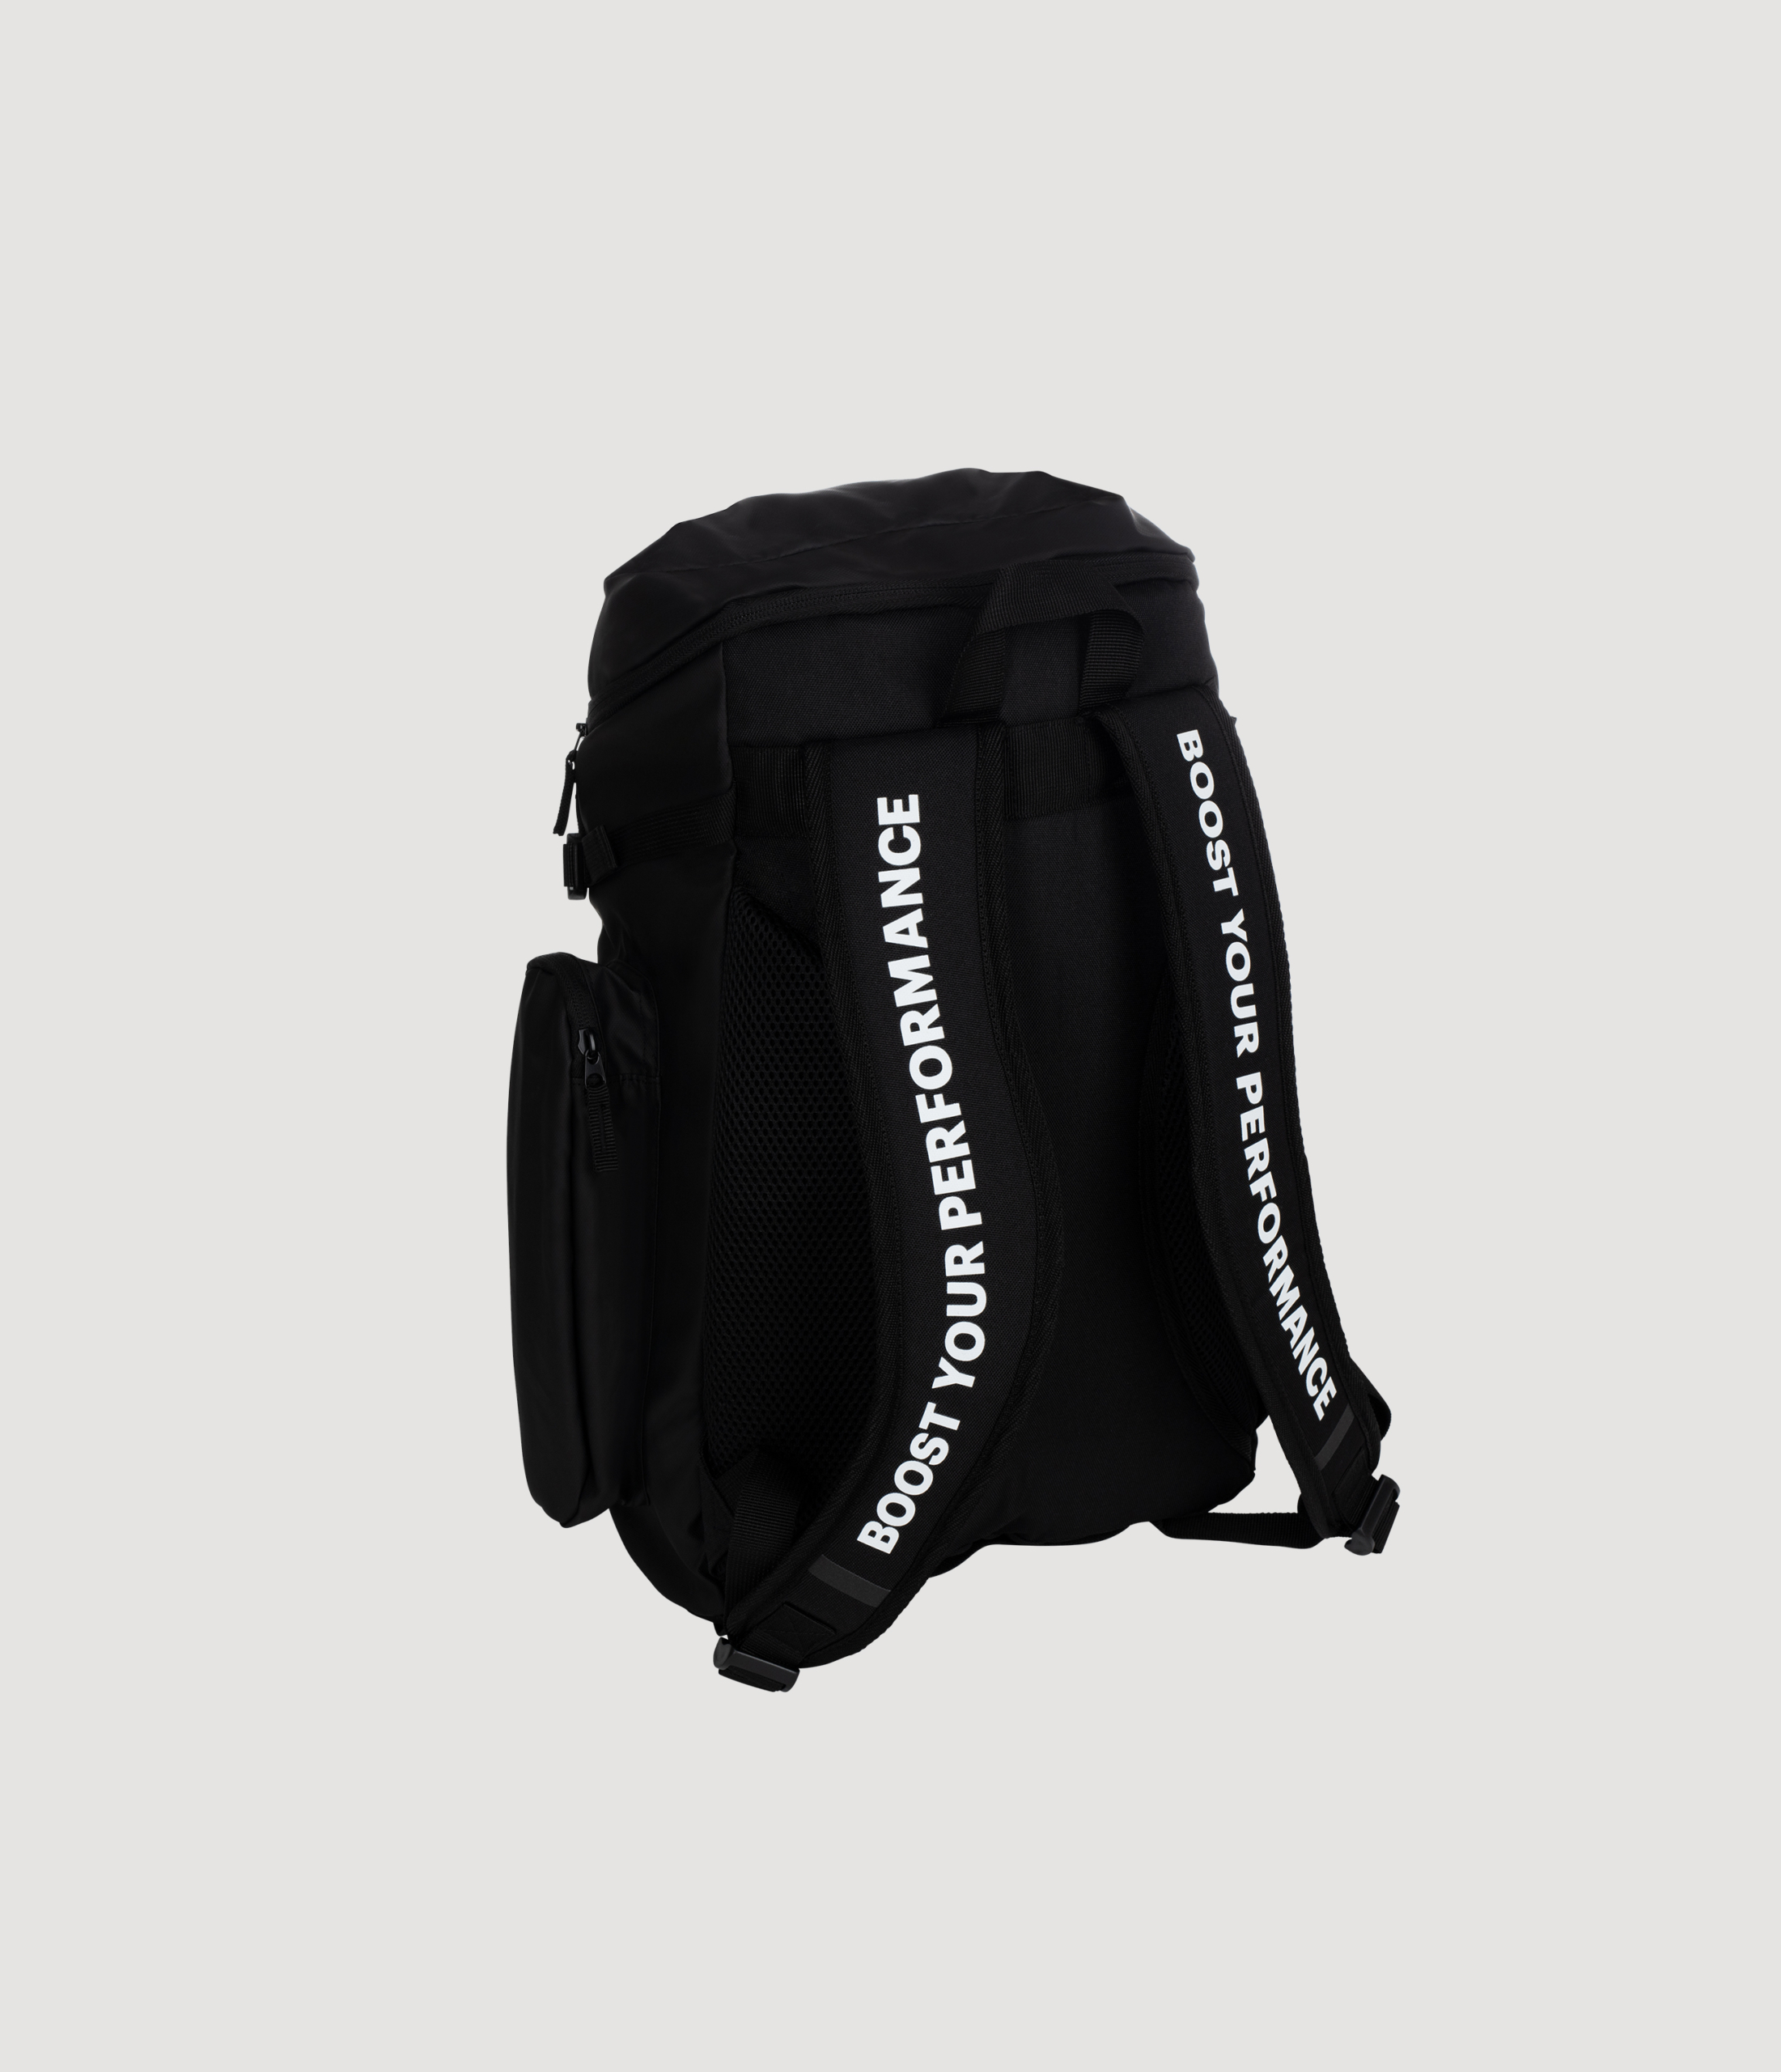 OX1 Stick Backpack